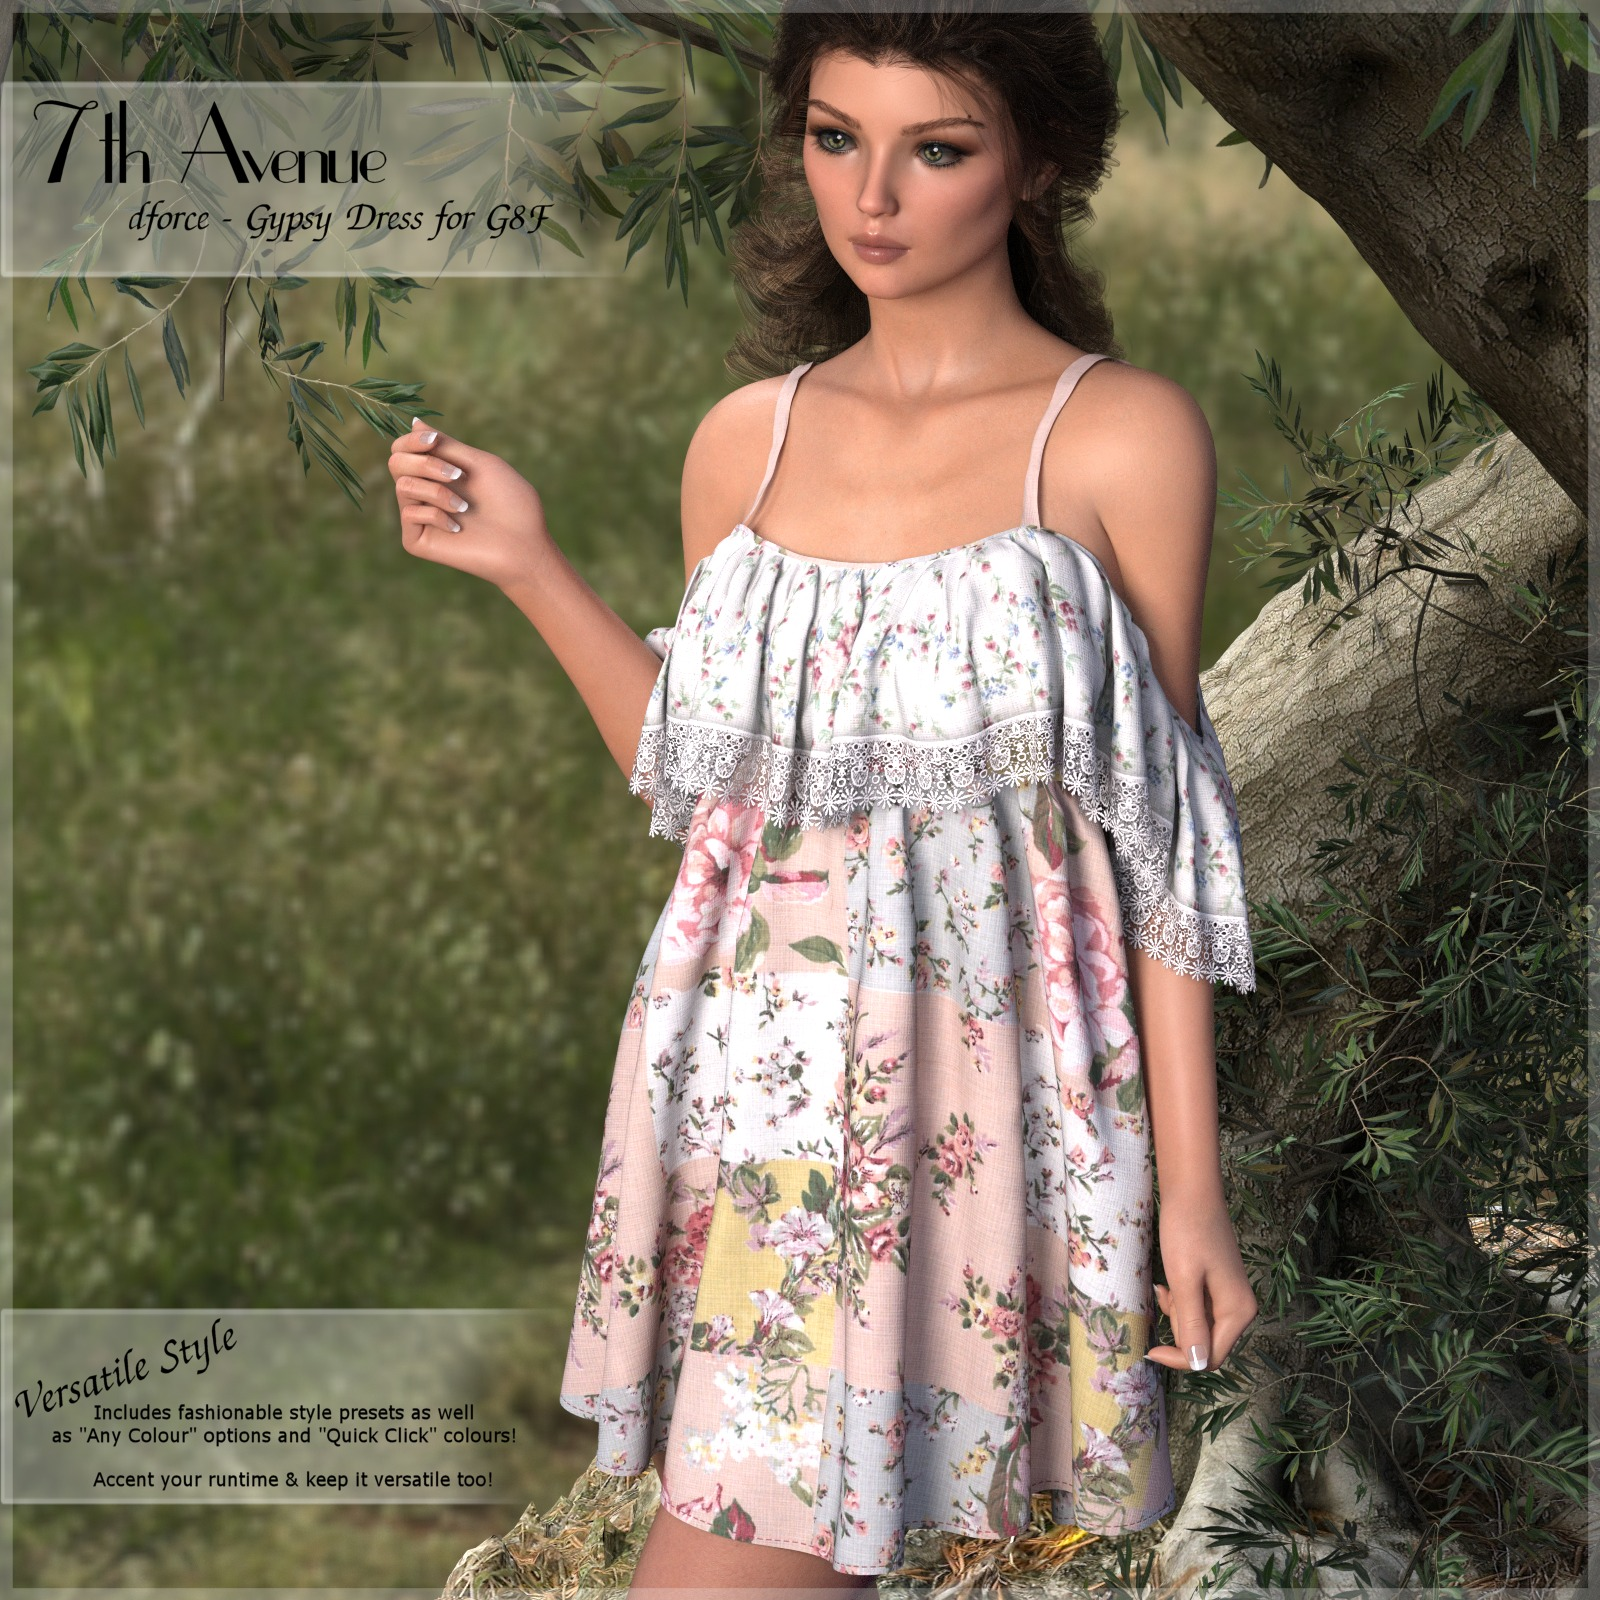 7th Ave: dForce - Gypsy Dress for G8F by 3-DArena